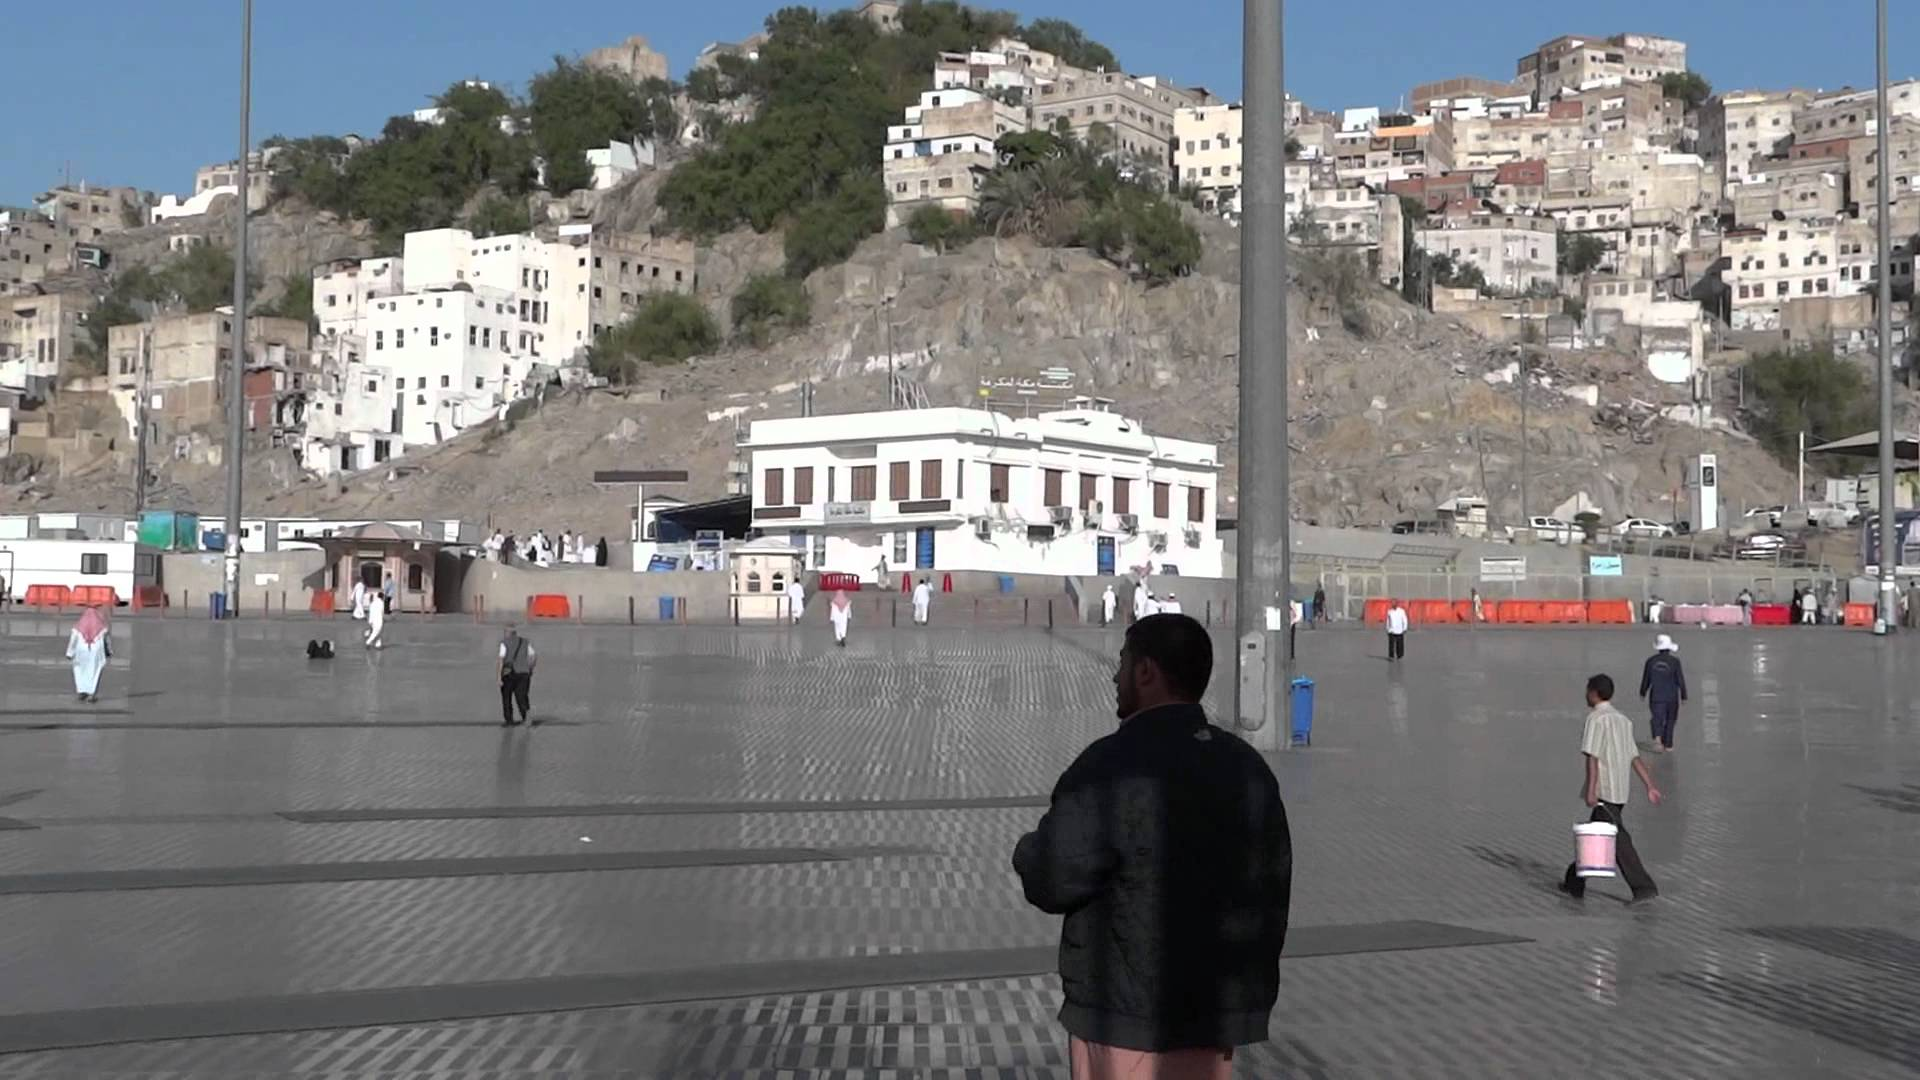 Birthplace of Mohammed Mecca, birth place home of prophet MUHAMMAD (p.b.u.h) (full HD) - YouTube